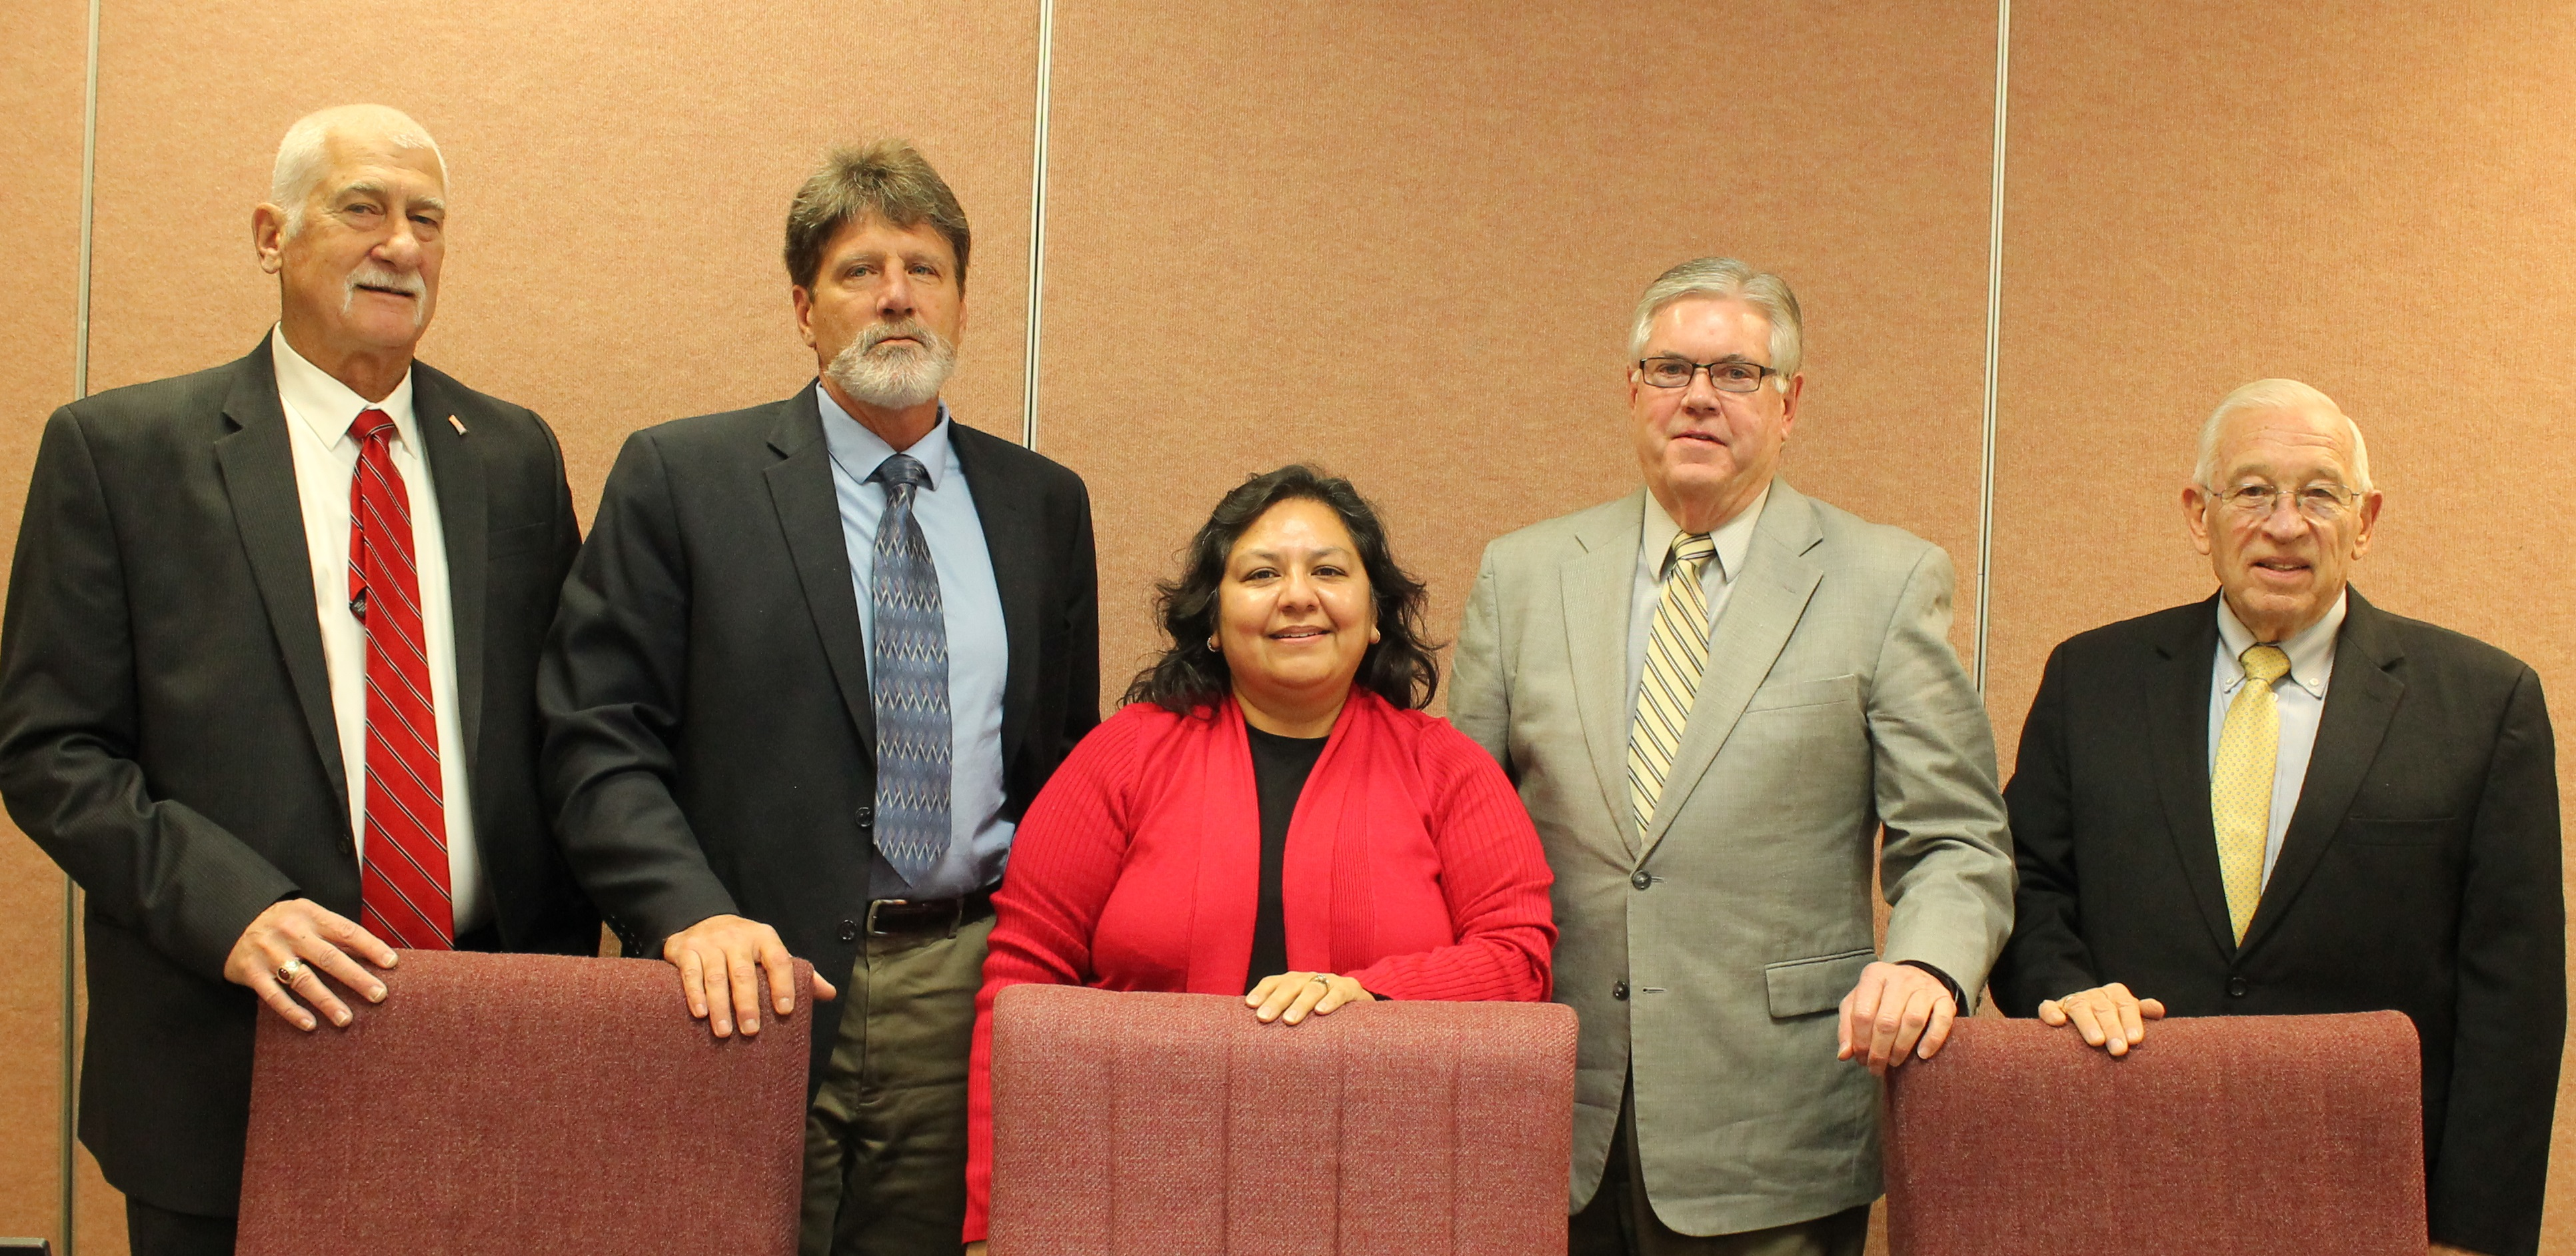 LISD Board of Education 2016-17